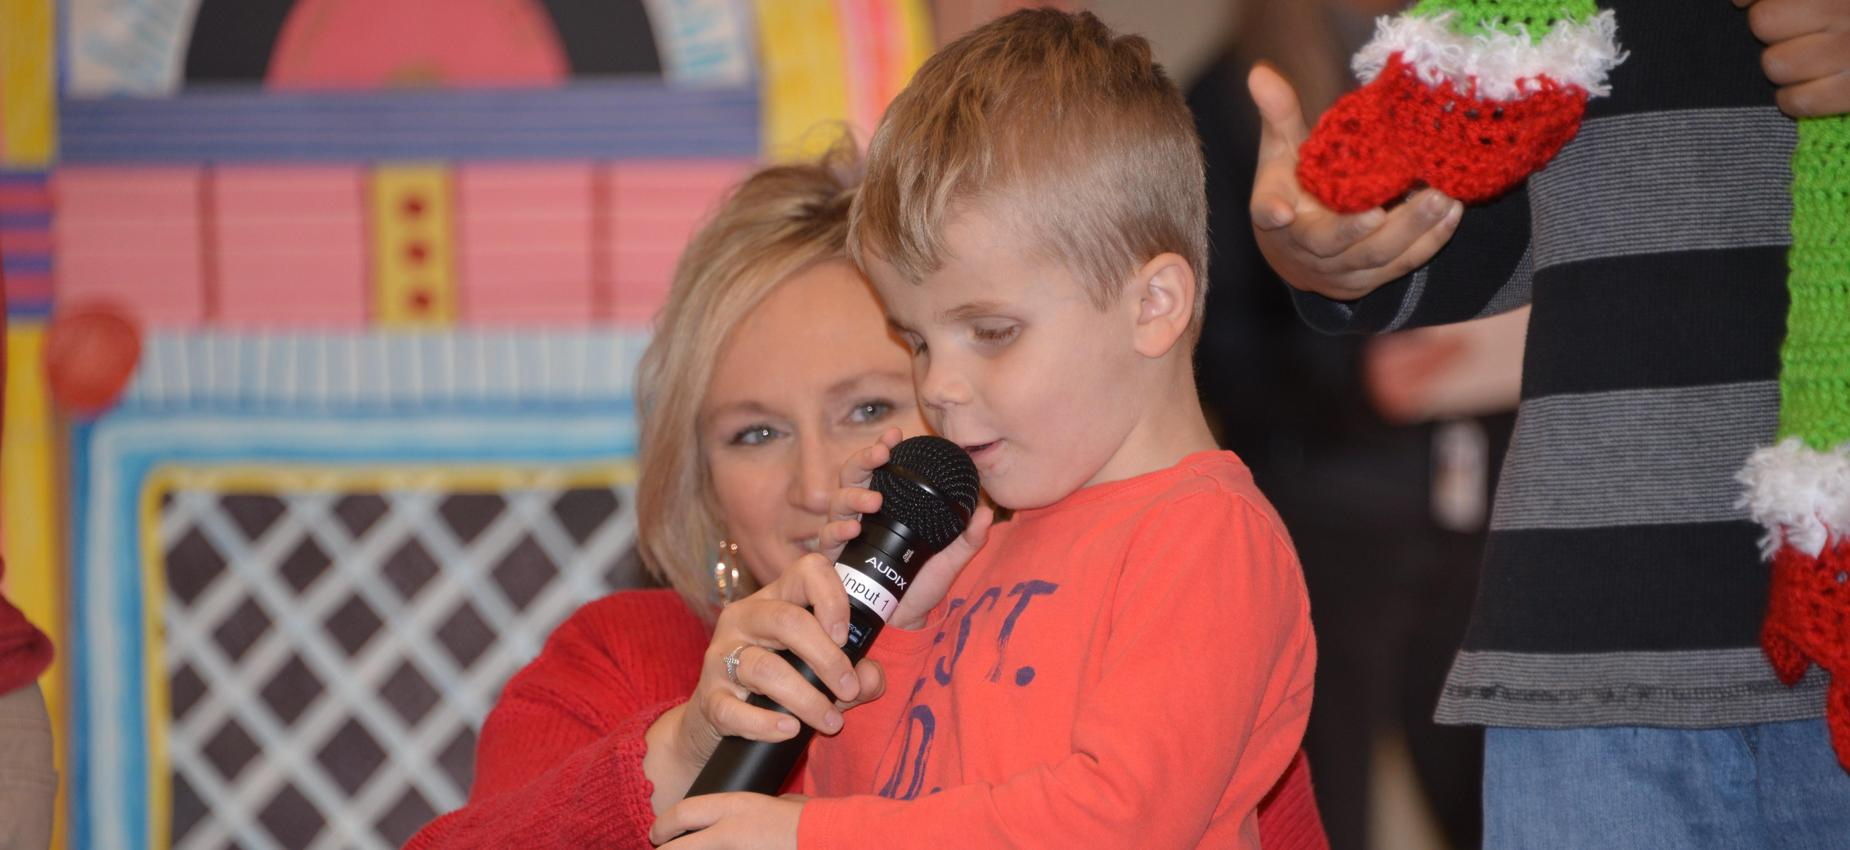 Teacher holding microphone for student